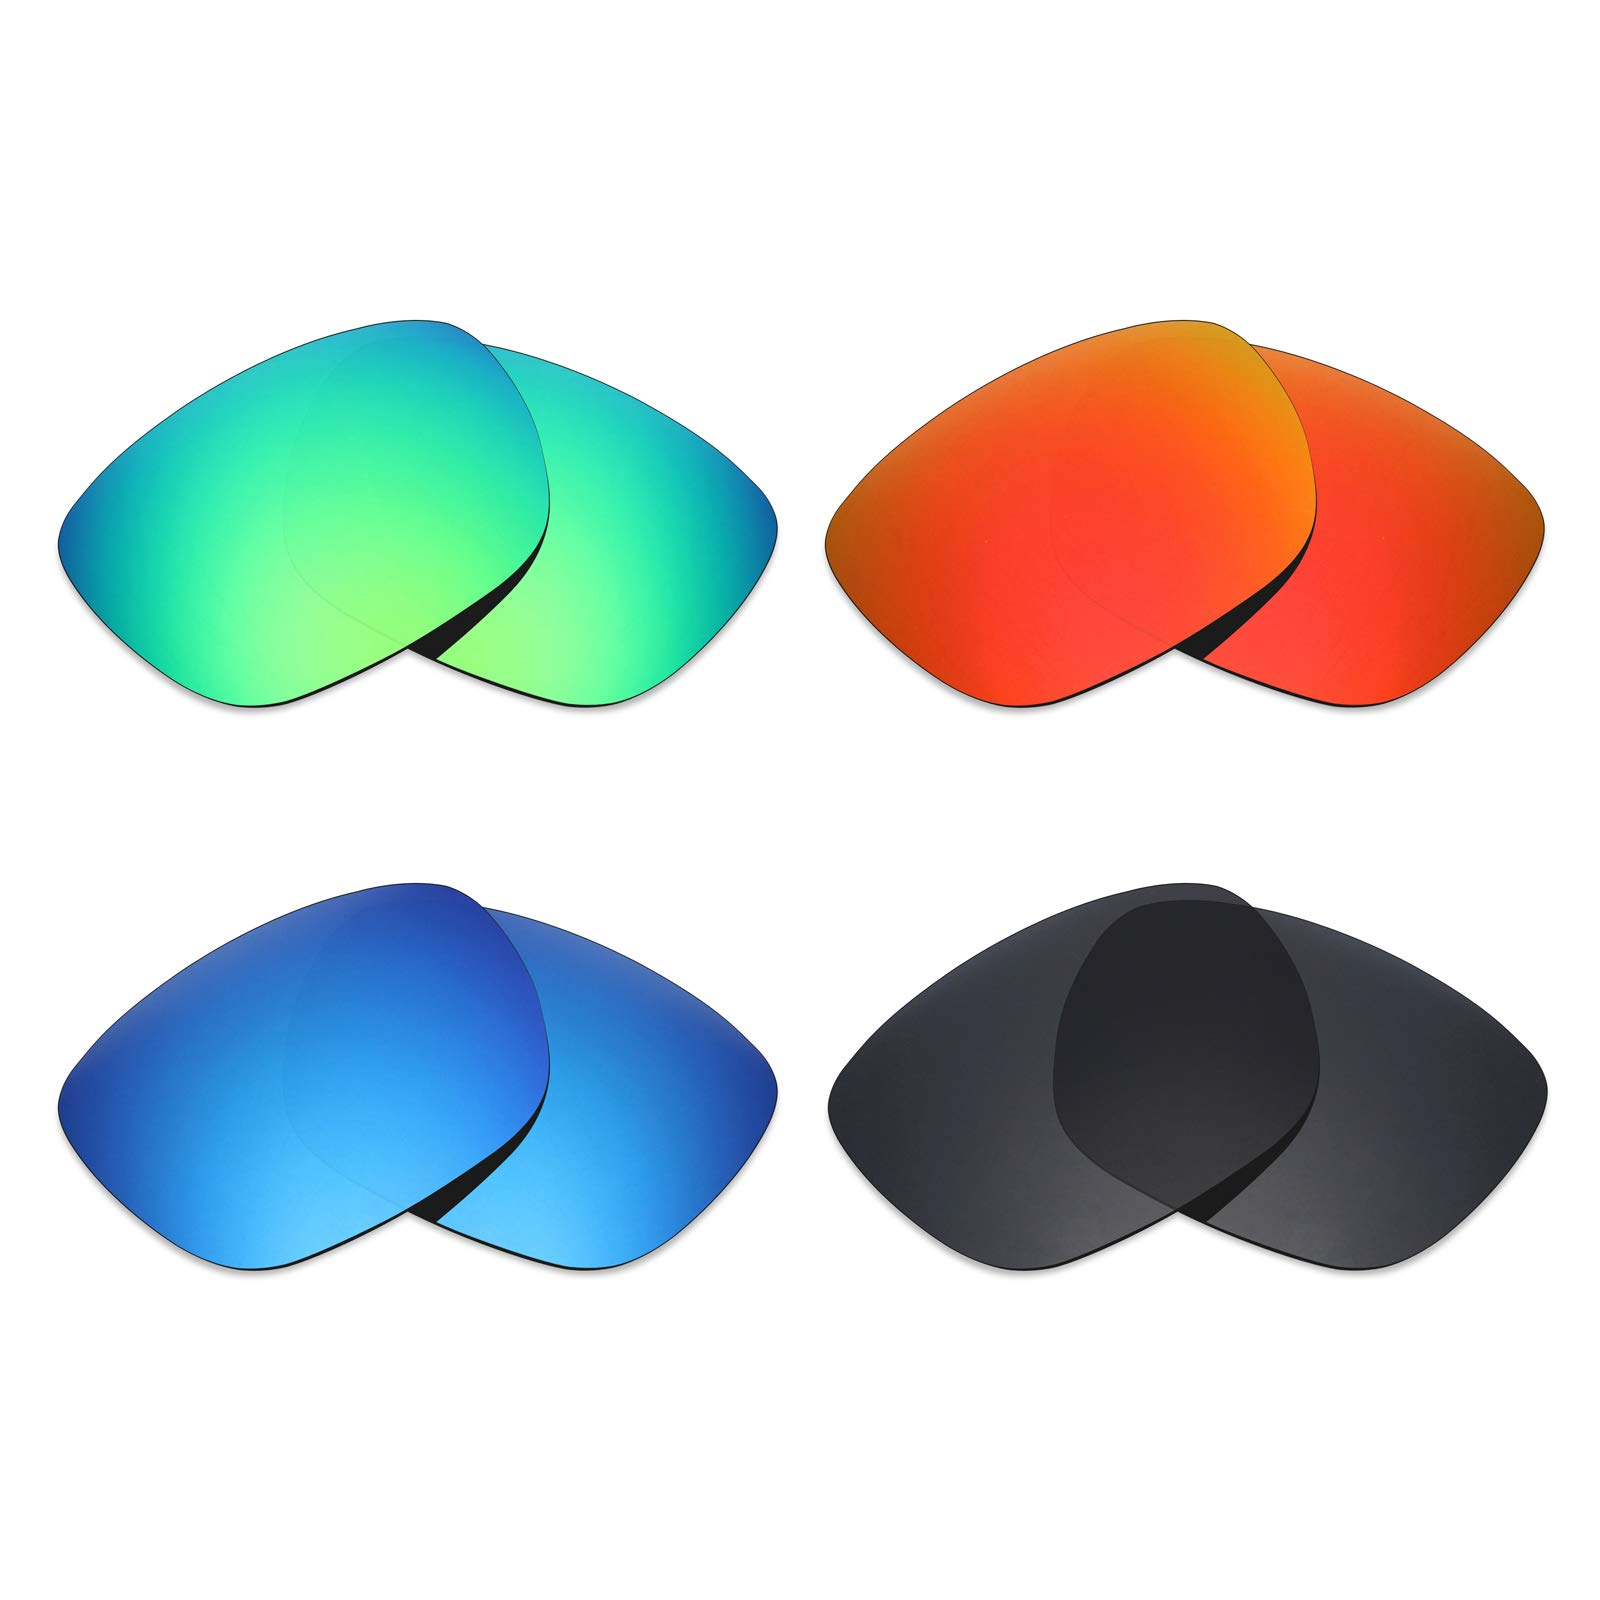 Mryok 4 Pair Polarized Replacement Lenses for Electric Knoxville Sunglass - Stealth Black/Fire Red/Ice Blue/Emerald Green